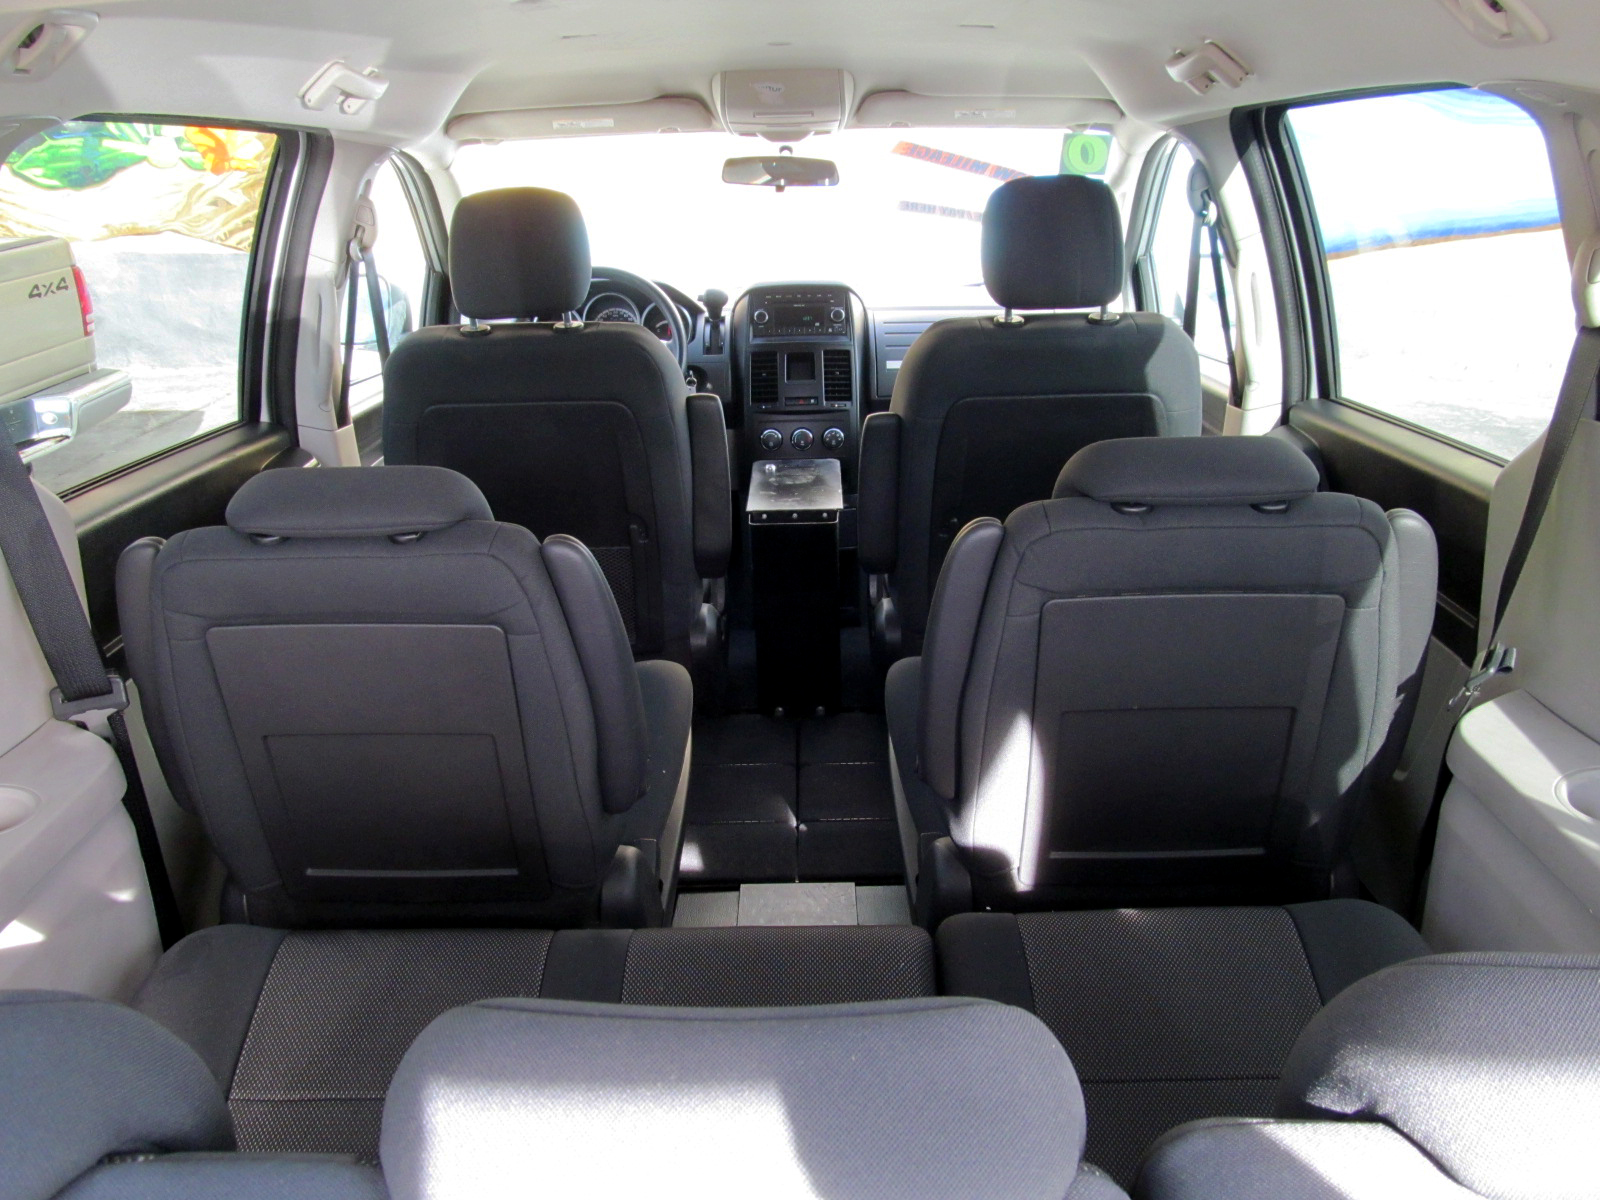 2009 Dodge Grand Caravan Interior Pictures Cargurus